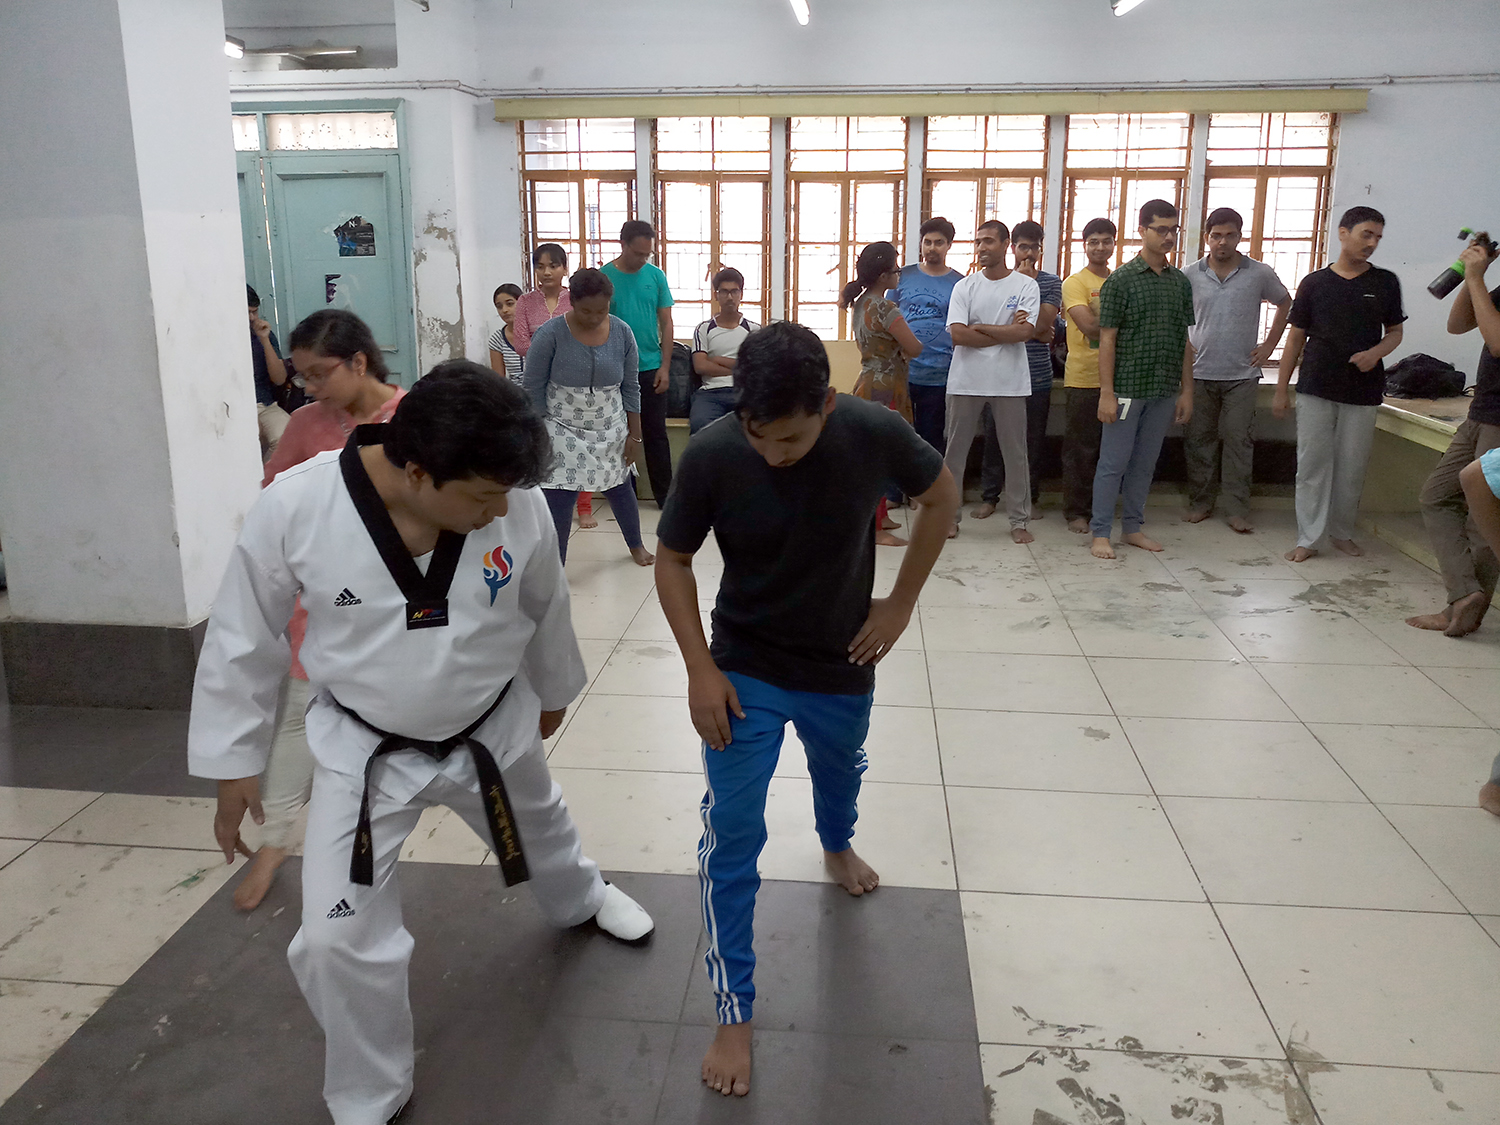 Pradipta Kumar Ray leads a training session. Photo credit: Gurvinder Singh